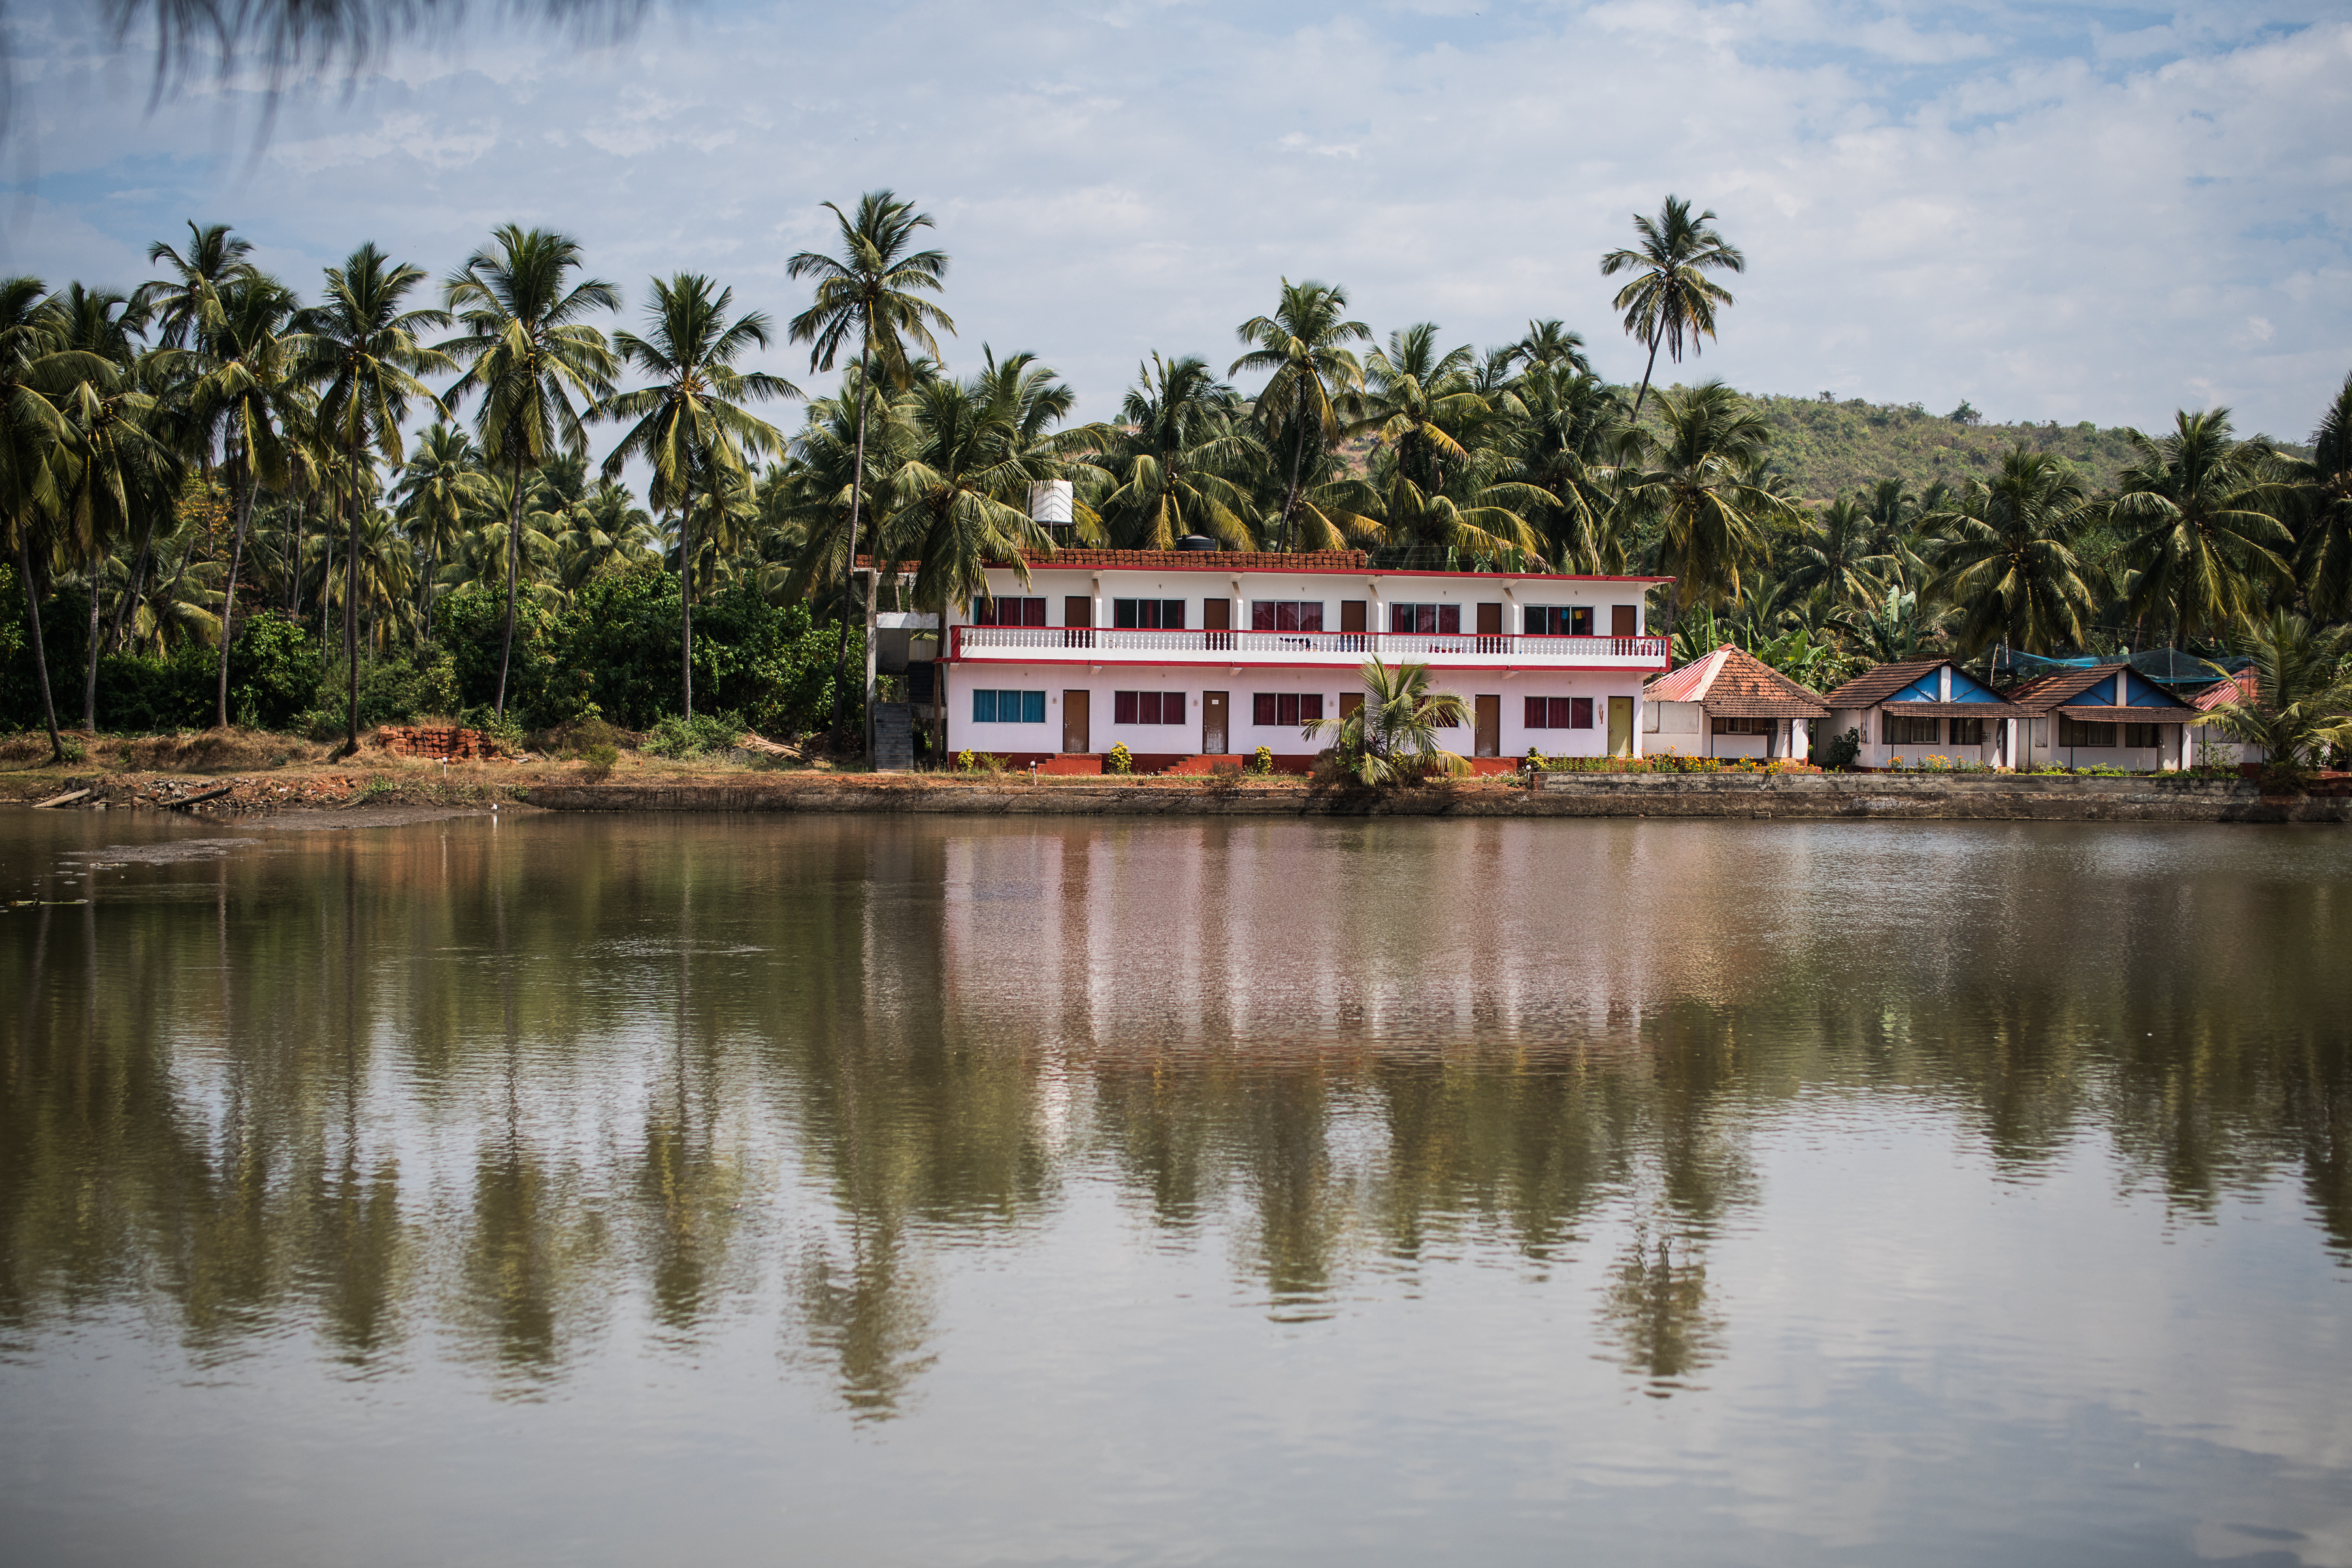 vishuddhi yoga school goa india accommodation1531134076.jpg